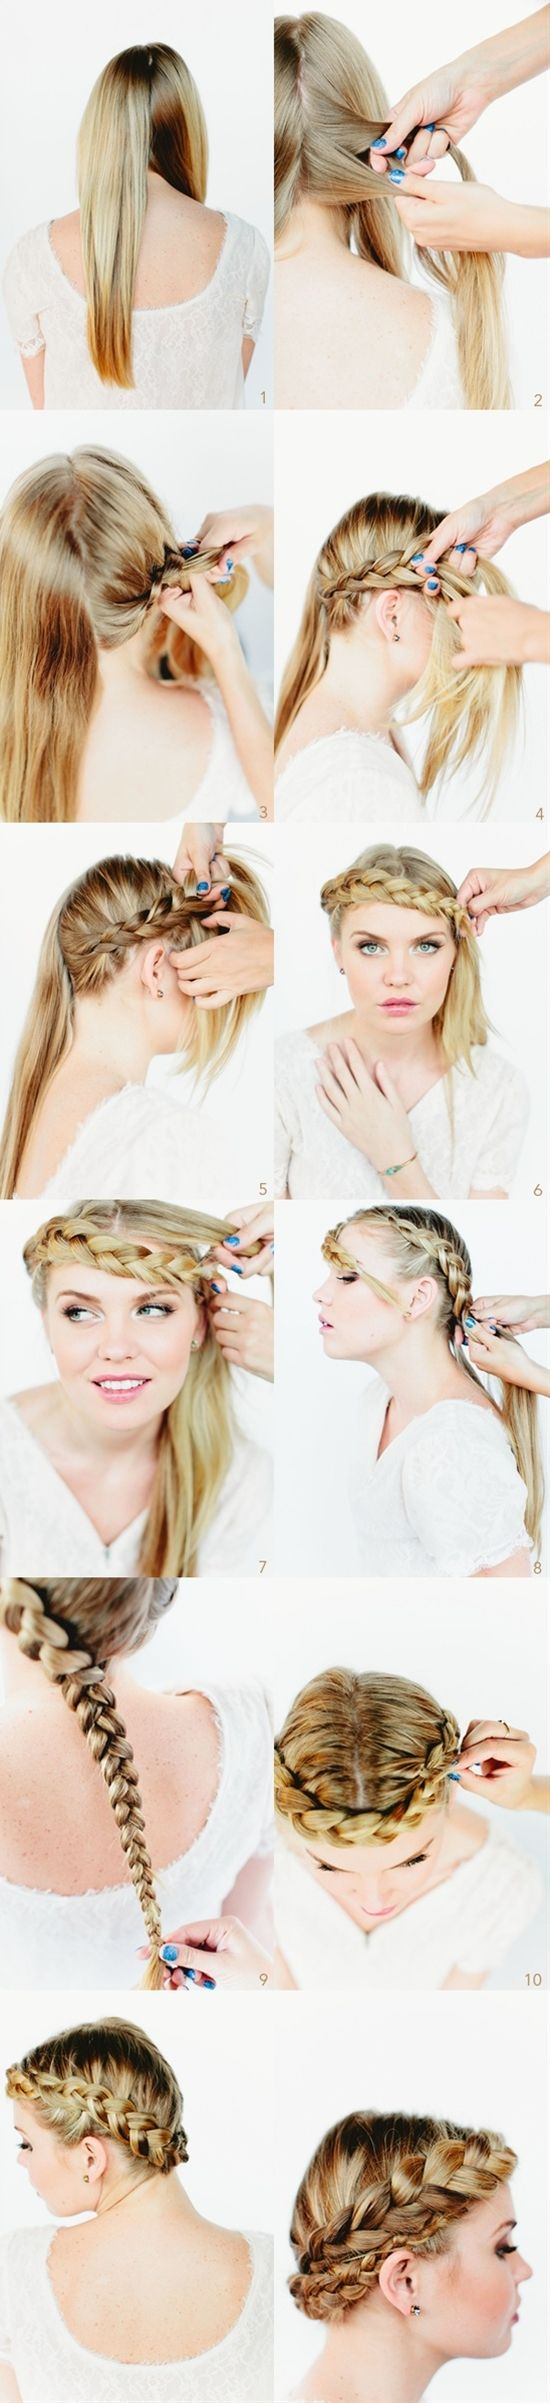 See crown braids braid updo bun hair hairdo hairstyles